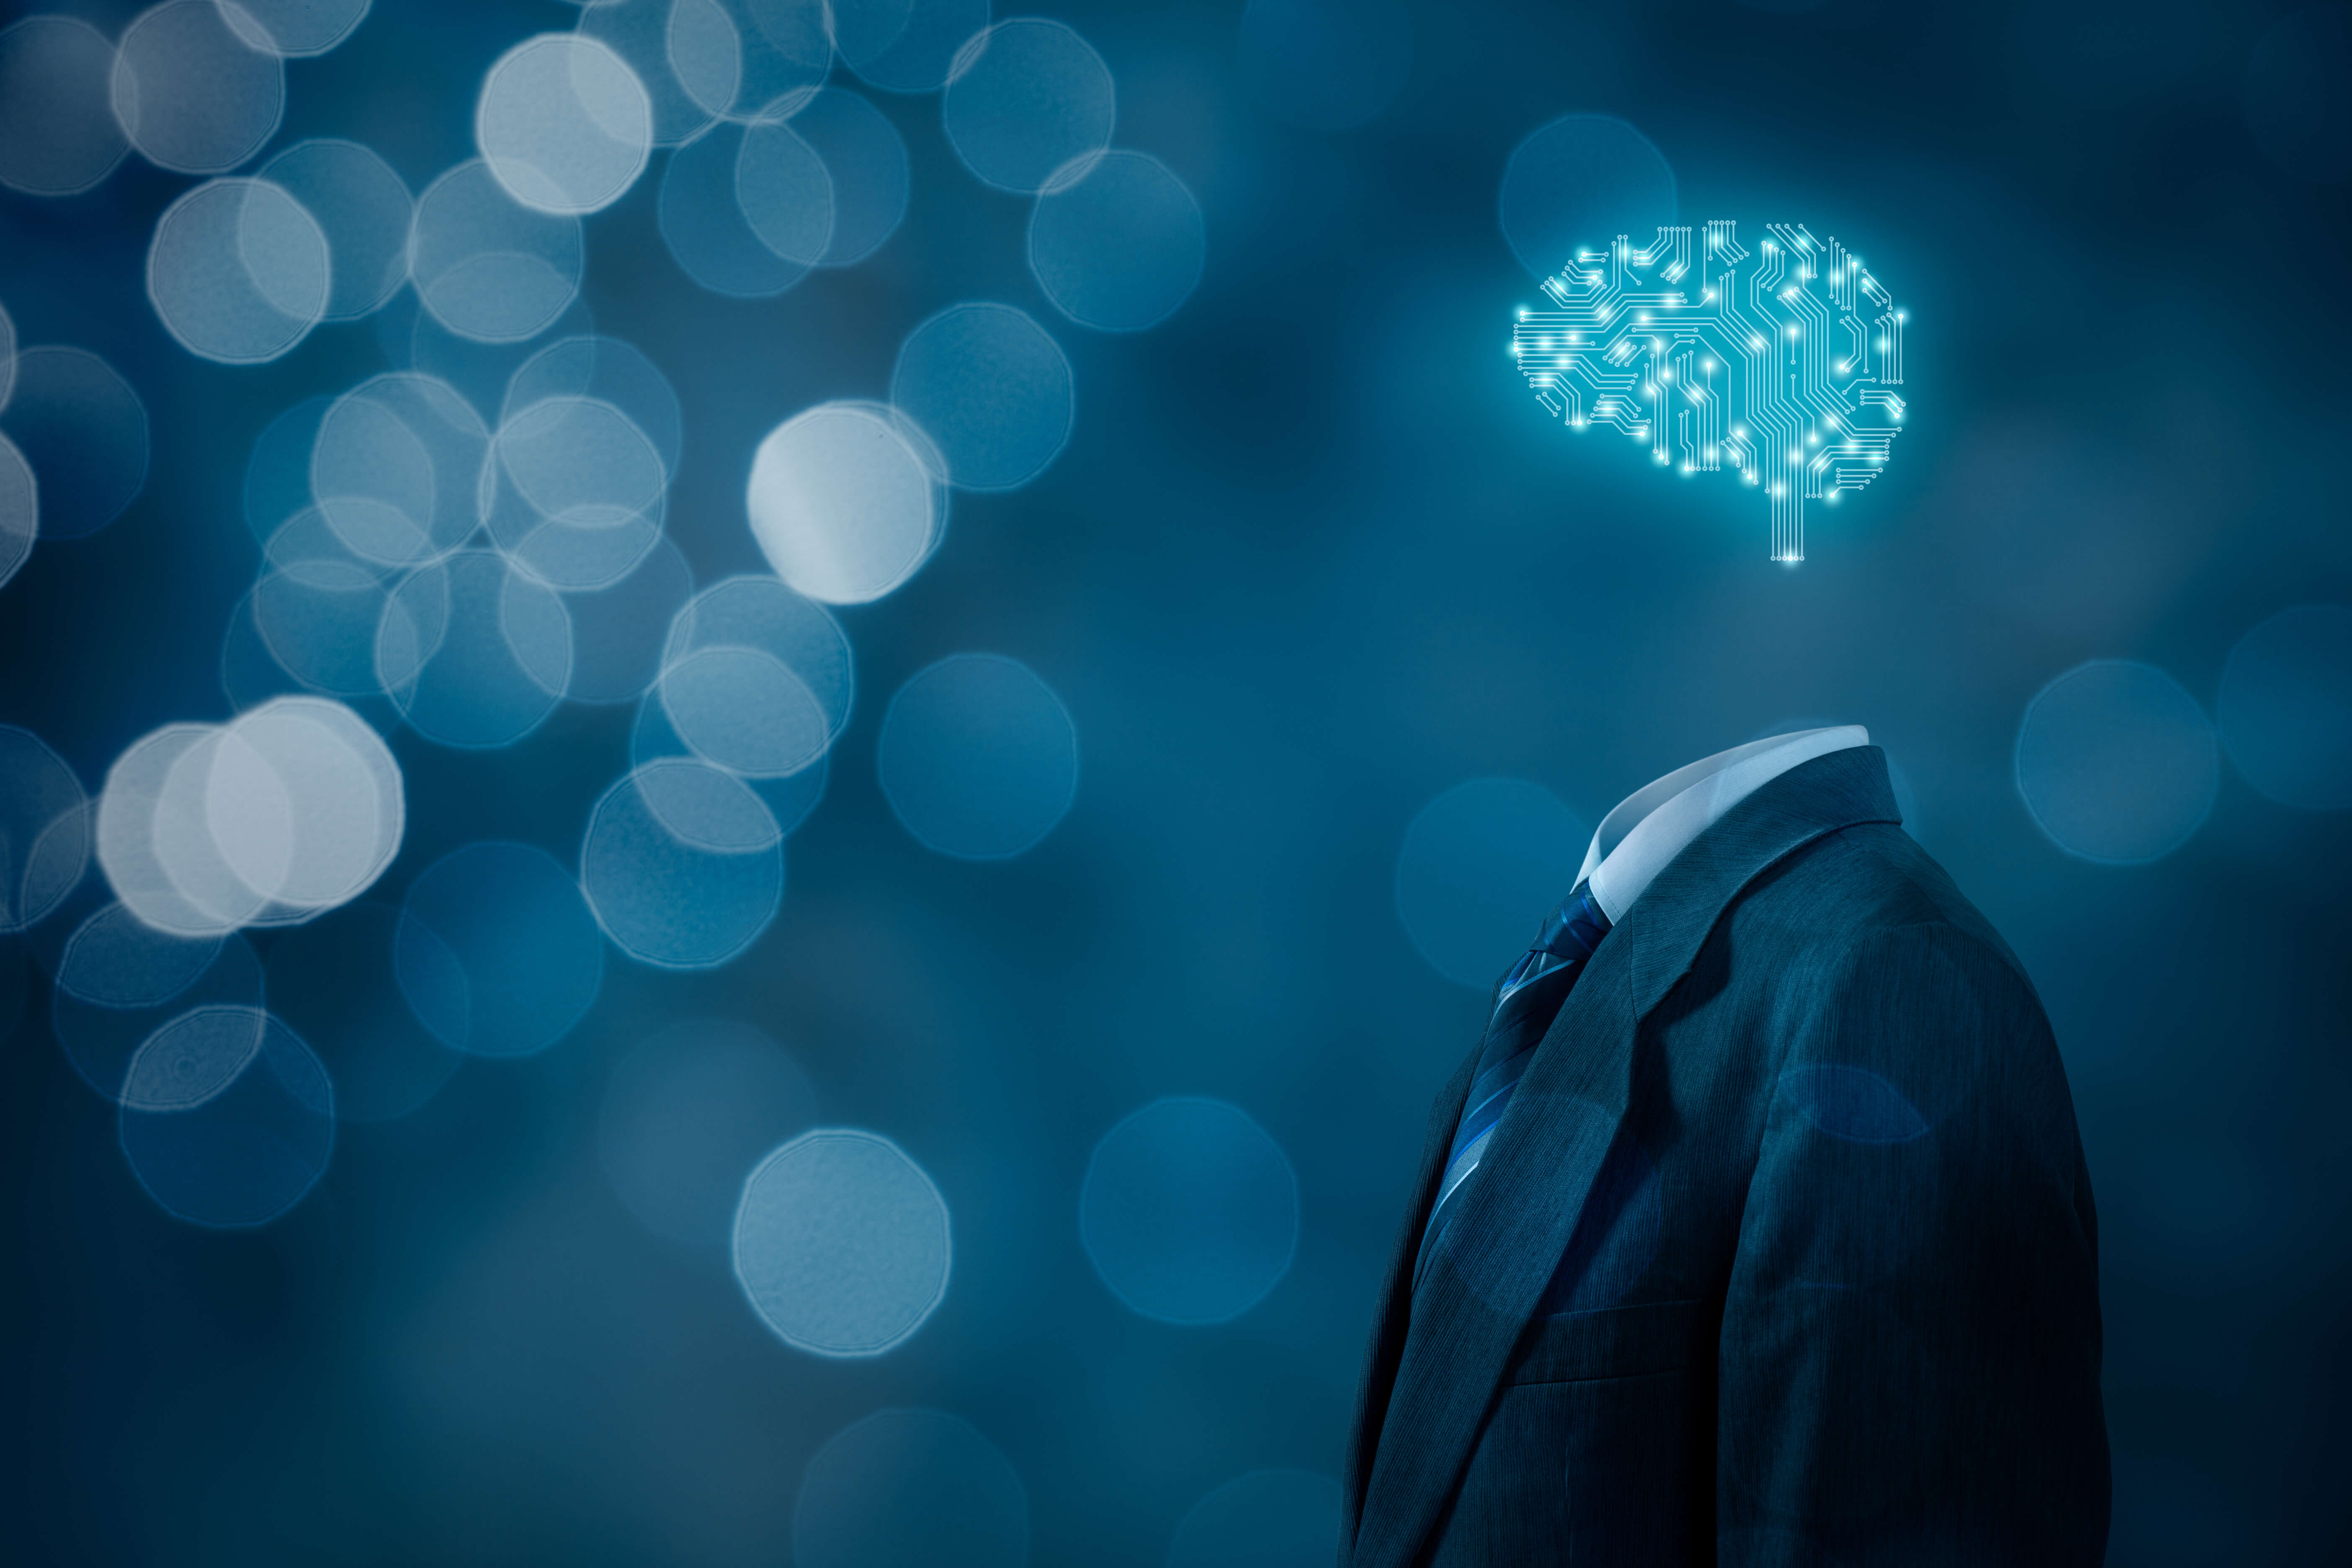 What changes will Artificial Intelligence & Data Science bring in 2019?